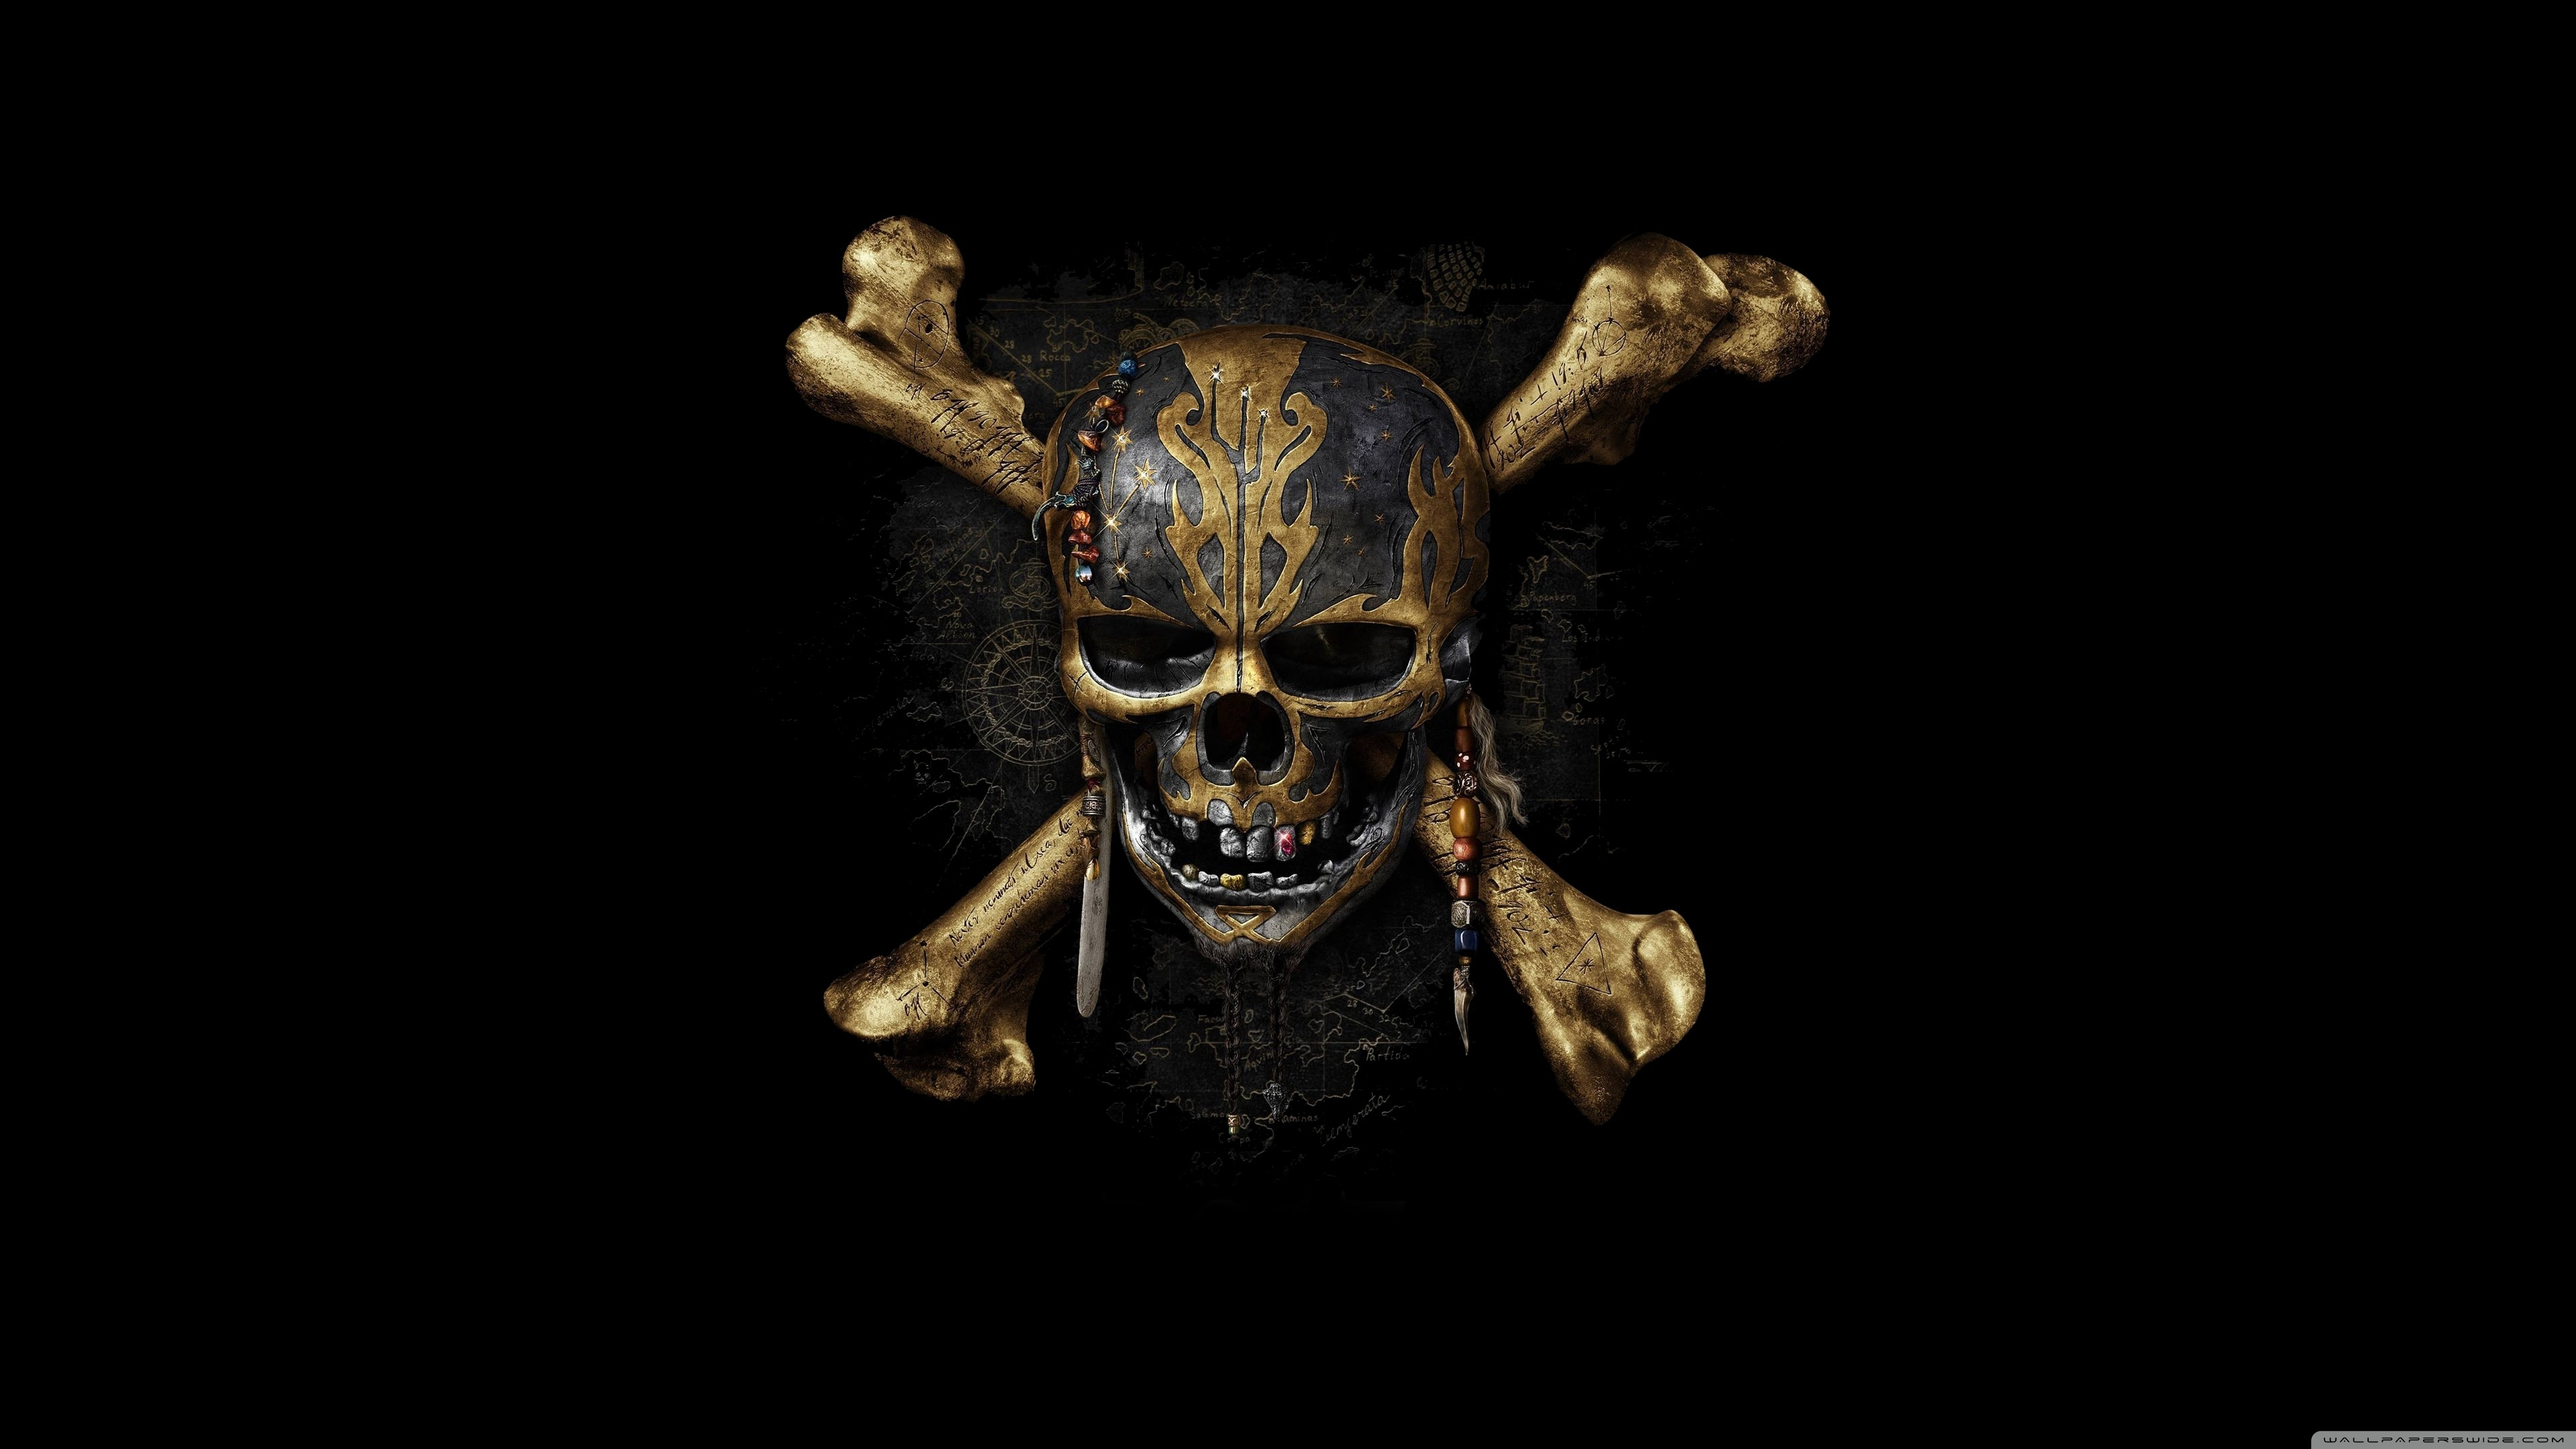 wallpaperswide ❤ pirates of the caribbean hd desktop wallpapers